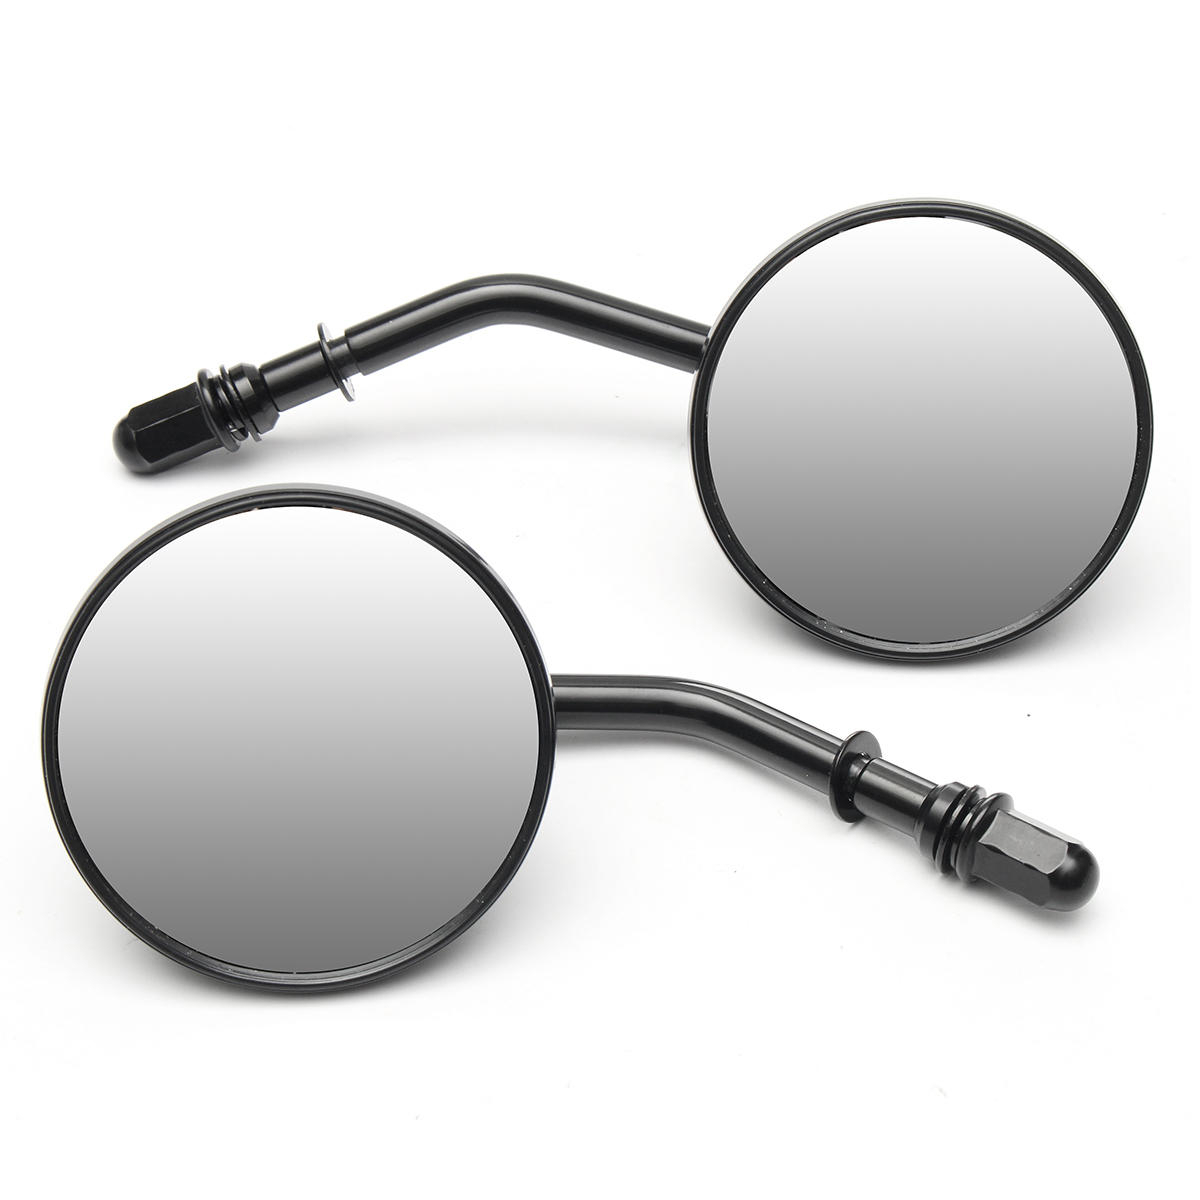 Well Liked Pair Round 3inch Motorcycle Mirrors Black For Harley Davidson Ryca With Harley Davidson Wall Mirrors (View 17 of 20)